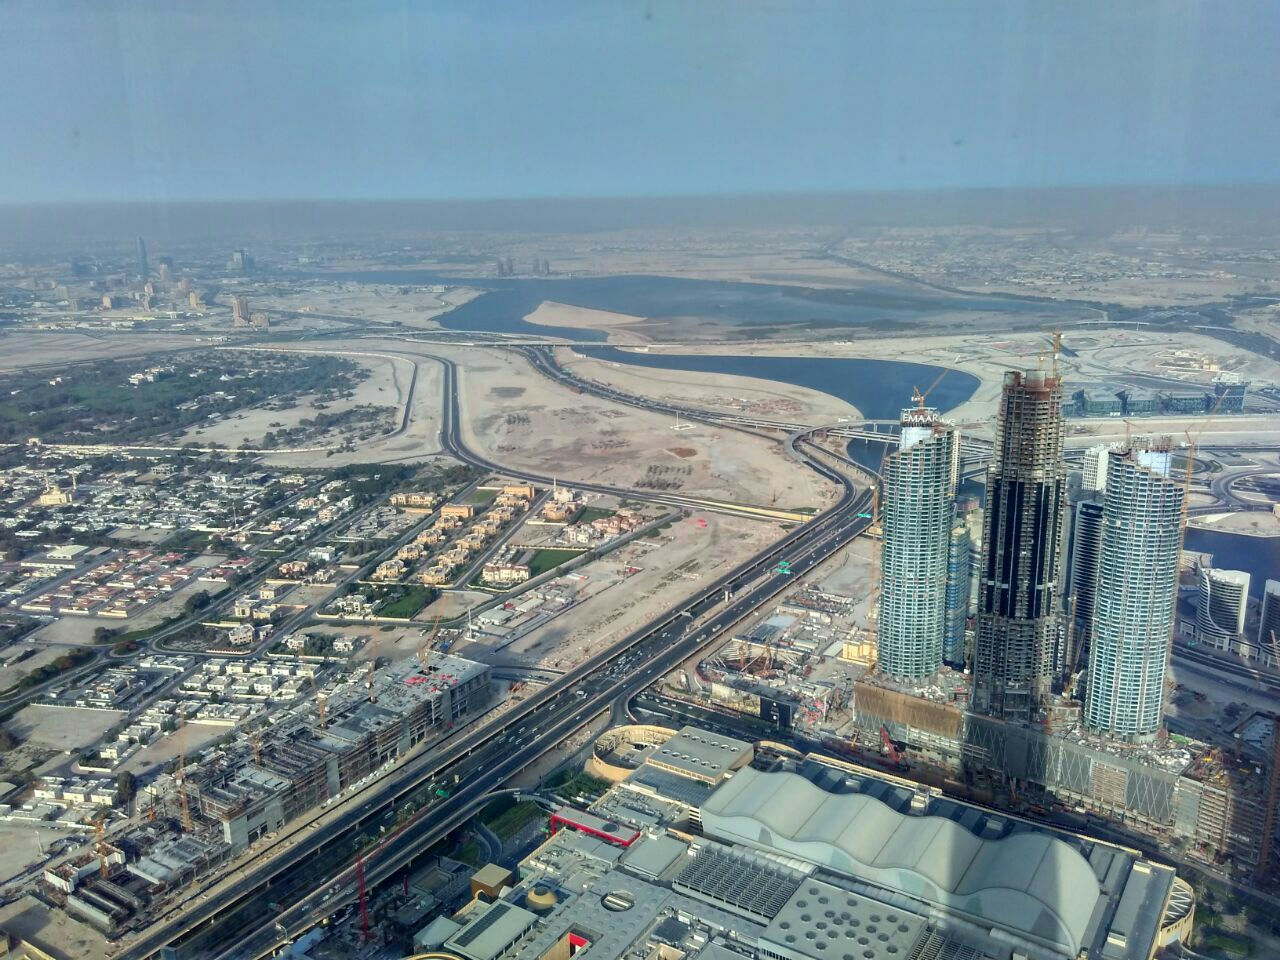 Dubai Creek seen from Burj Khalifa observation deck